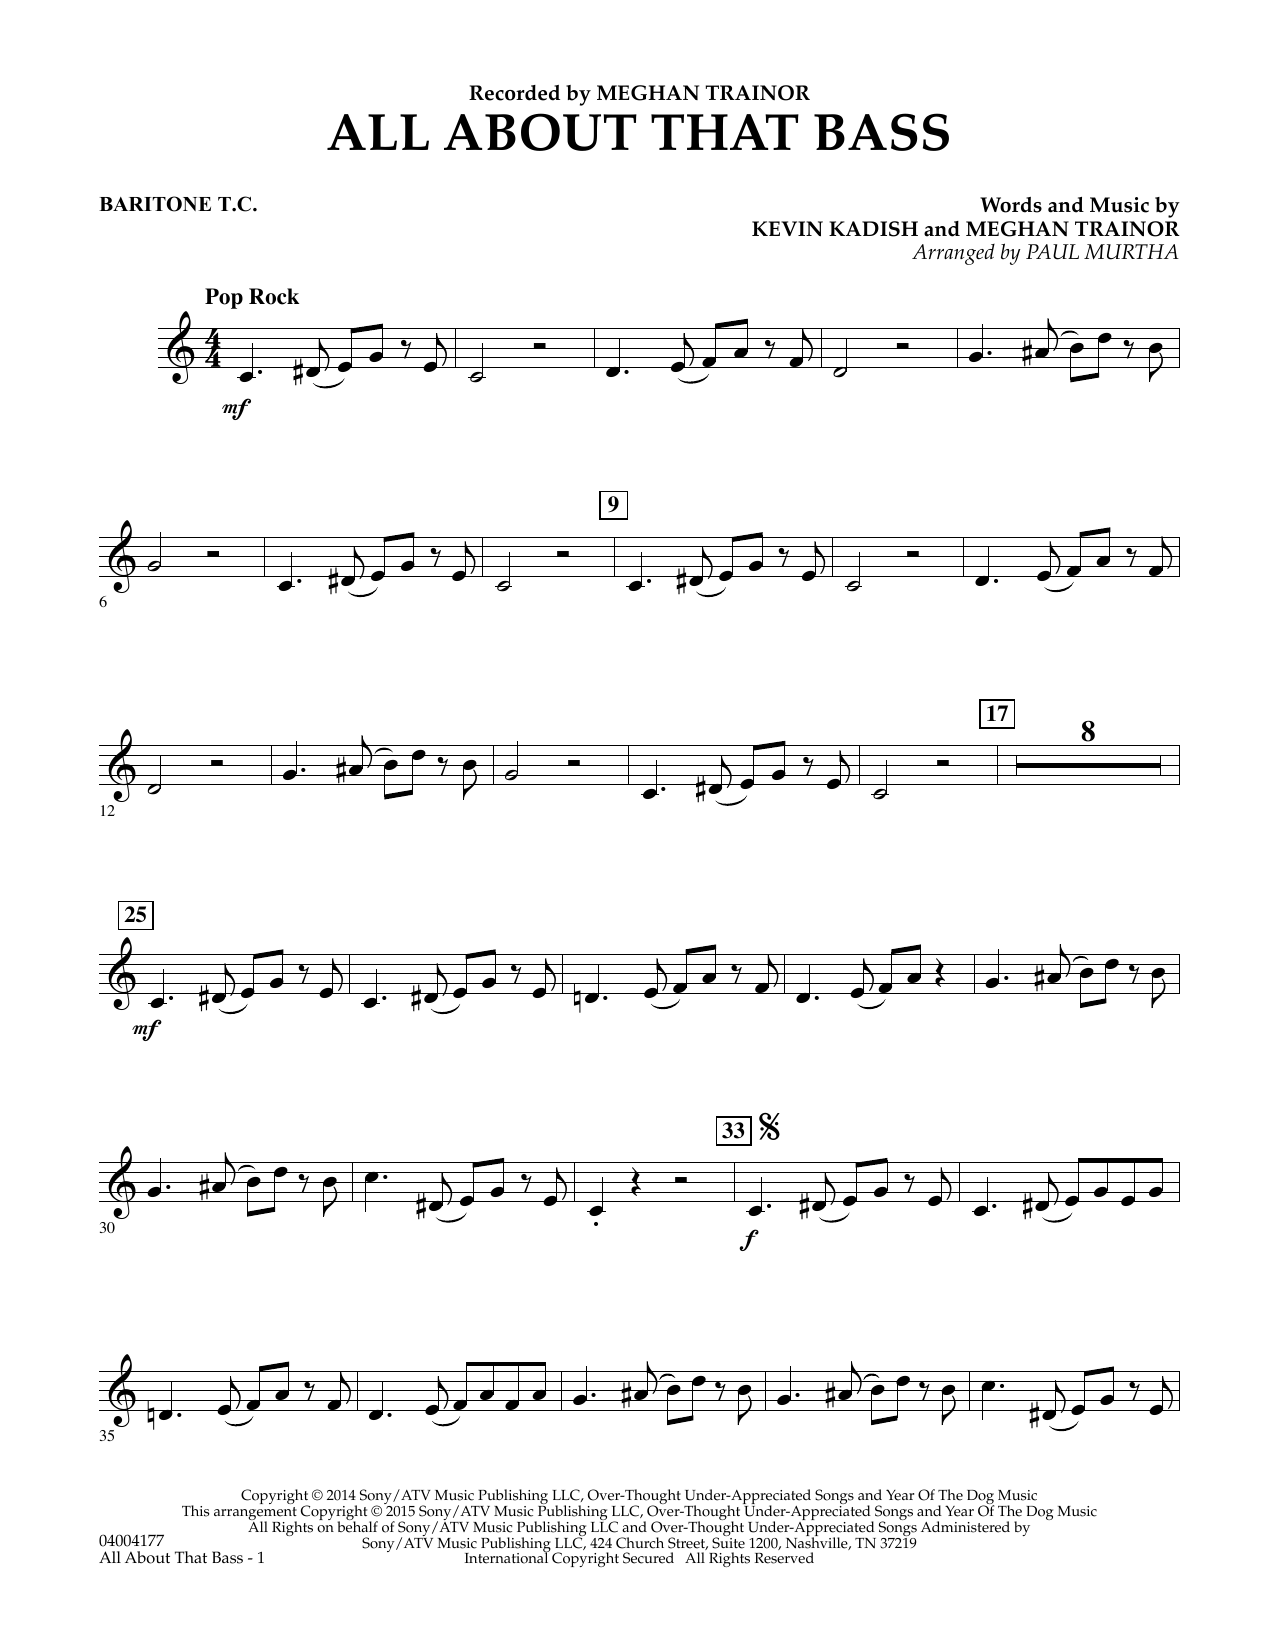 Paul Murtha All About That Bass - Baritone T.C. sheet music notes and chords. Download Printable PDF.